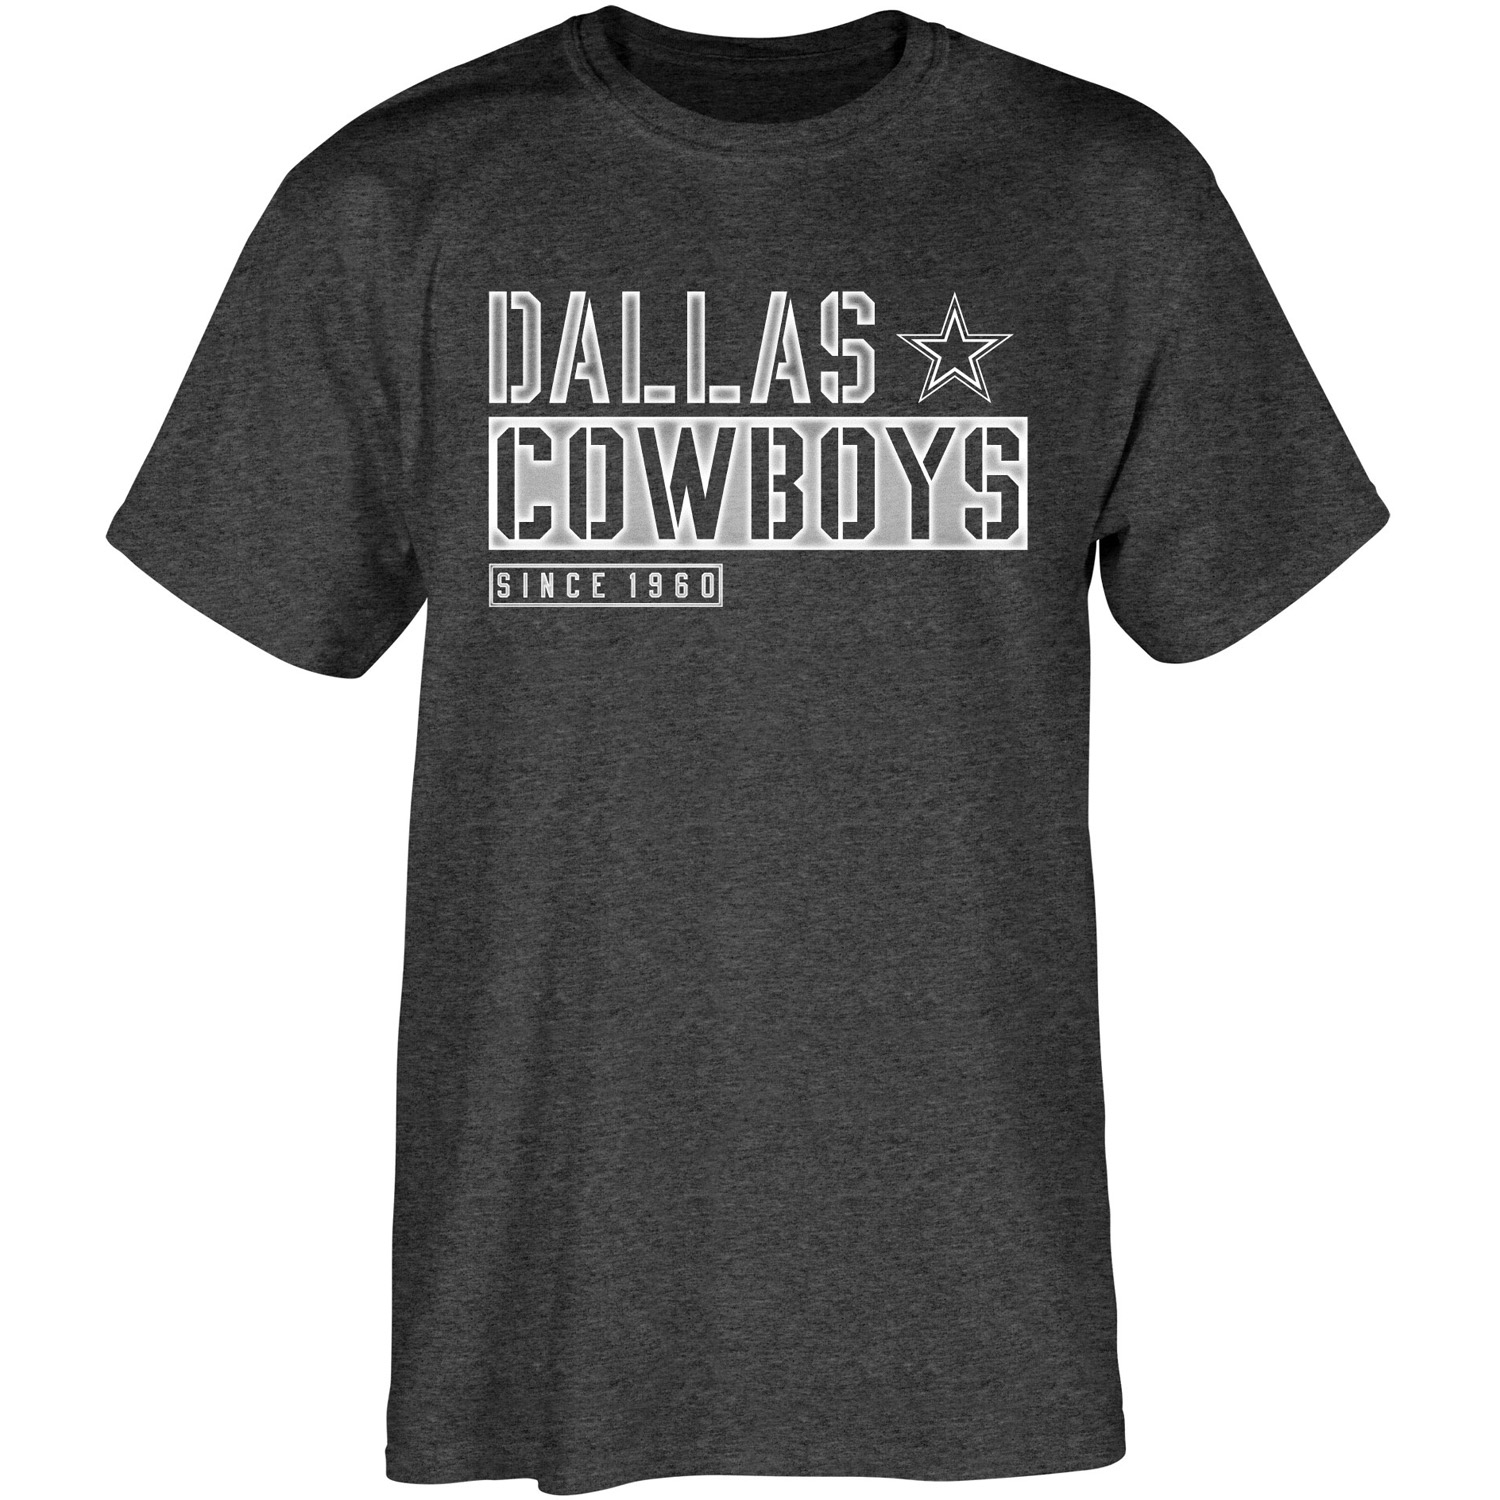 Dallas Cowboys Field General T-Shirt - Heathered Black